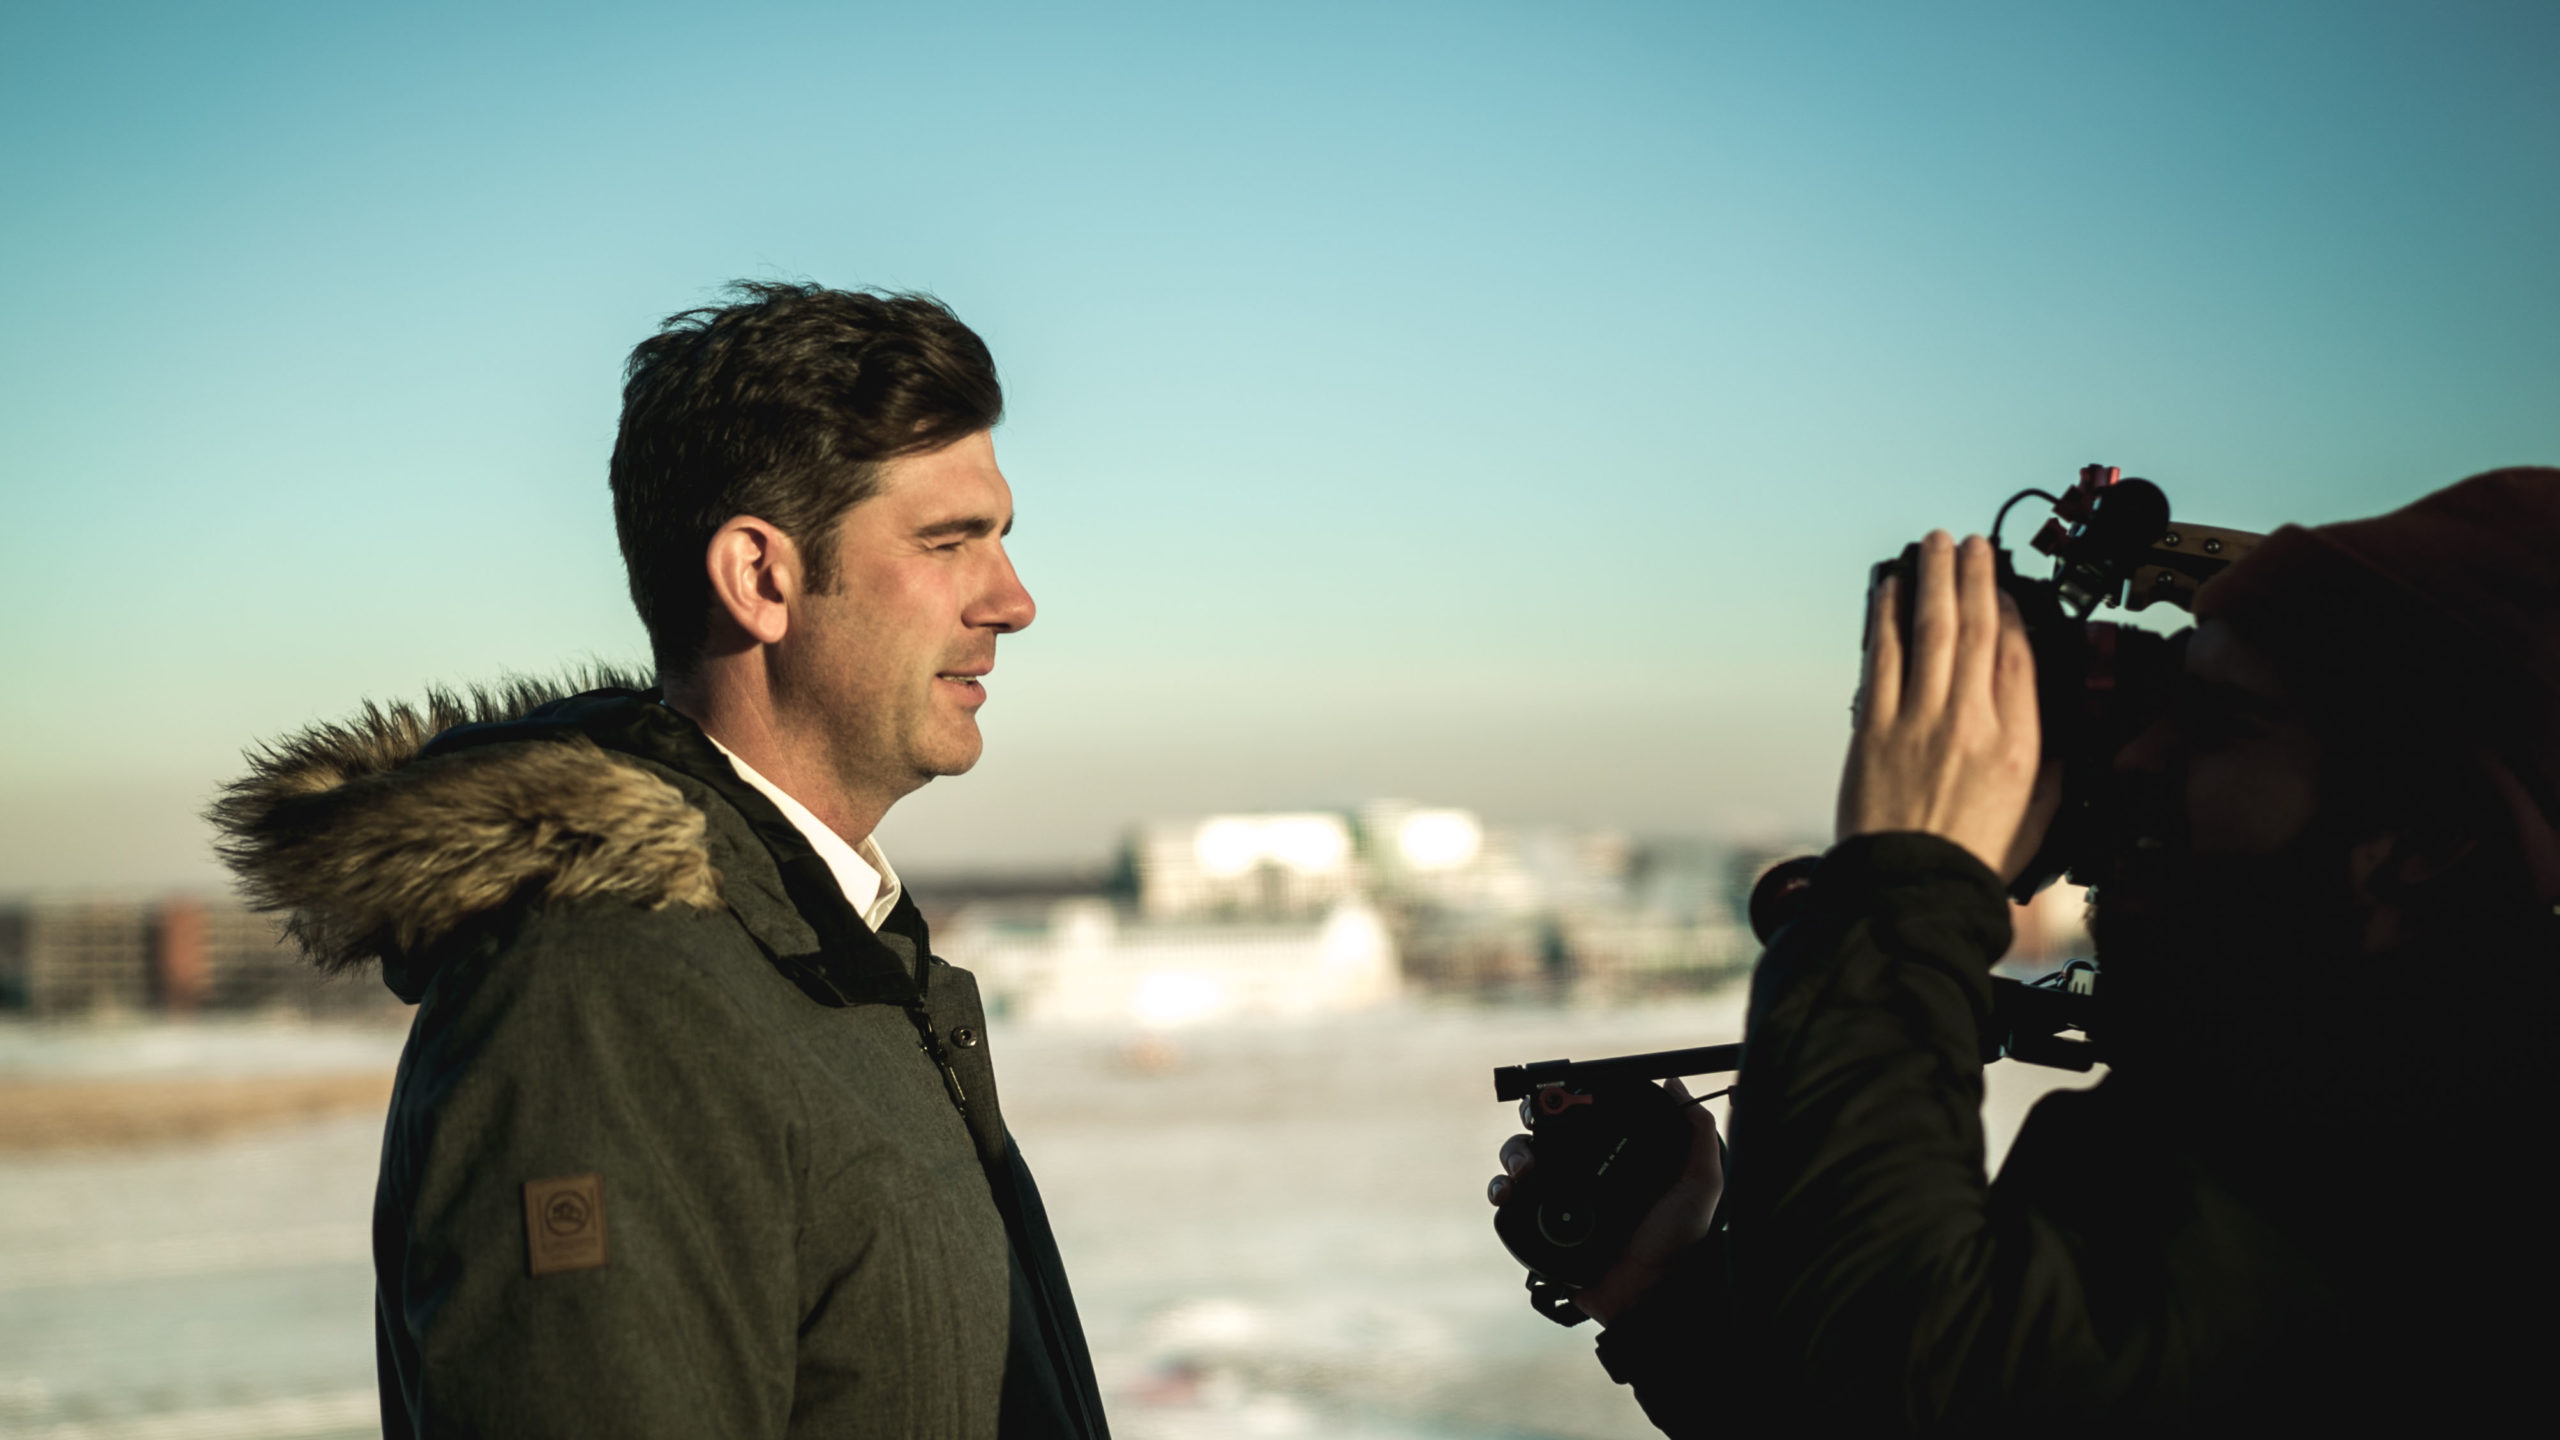 Don Iveson filming Renewable at blatchford tower